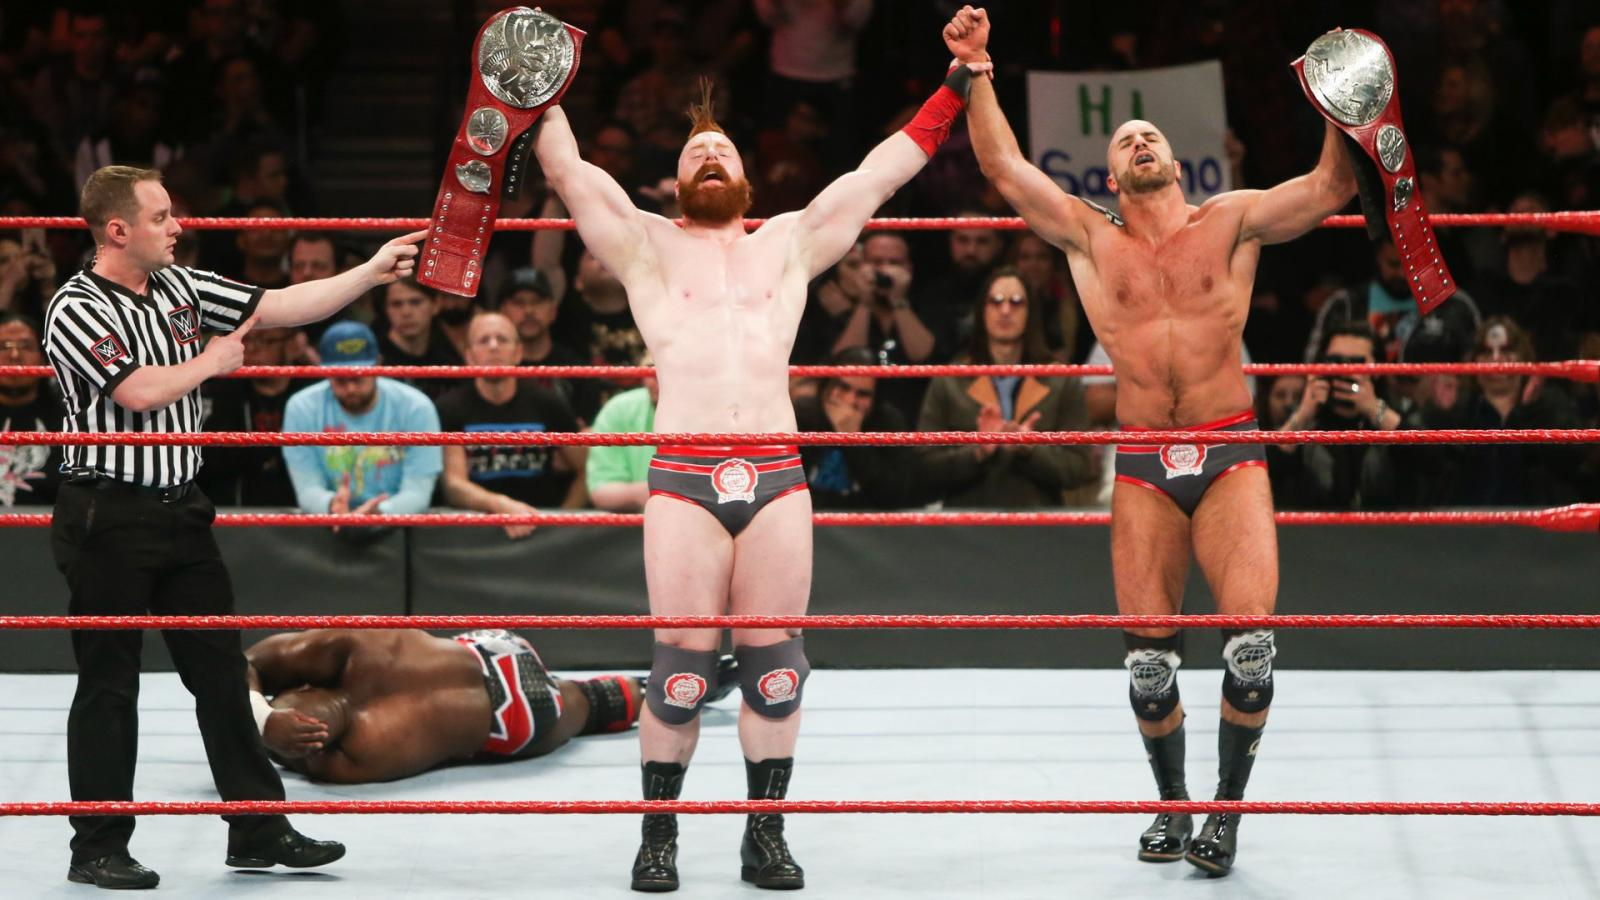 WWE Elimination chamber 2018 - Cesaro y Sheamus derrotaron a Titus Worldwide